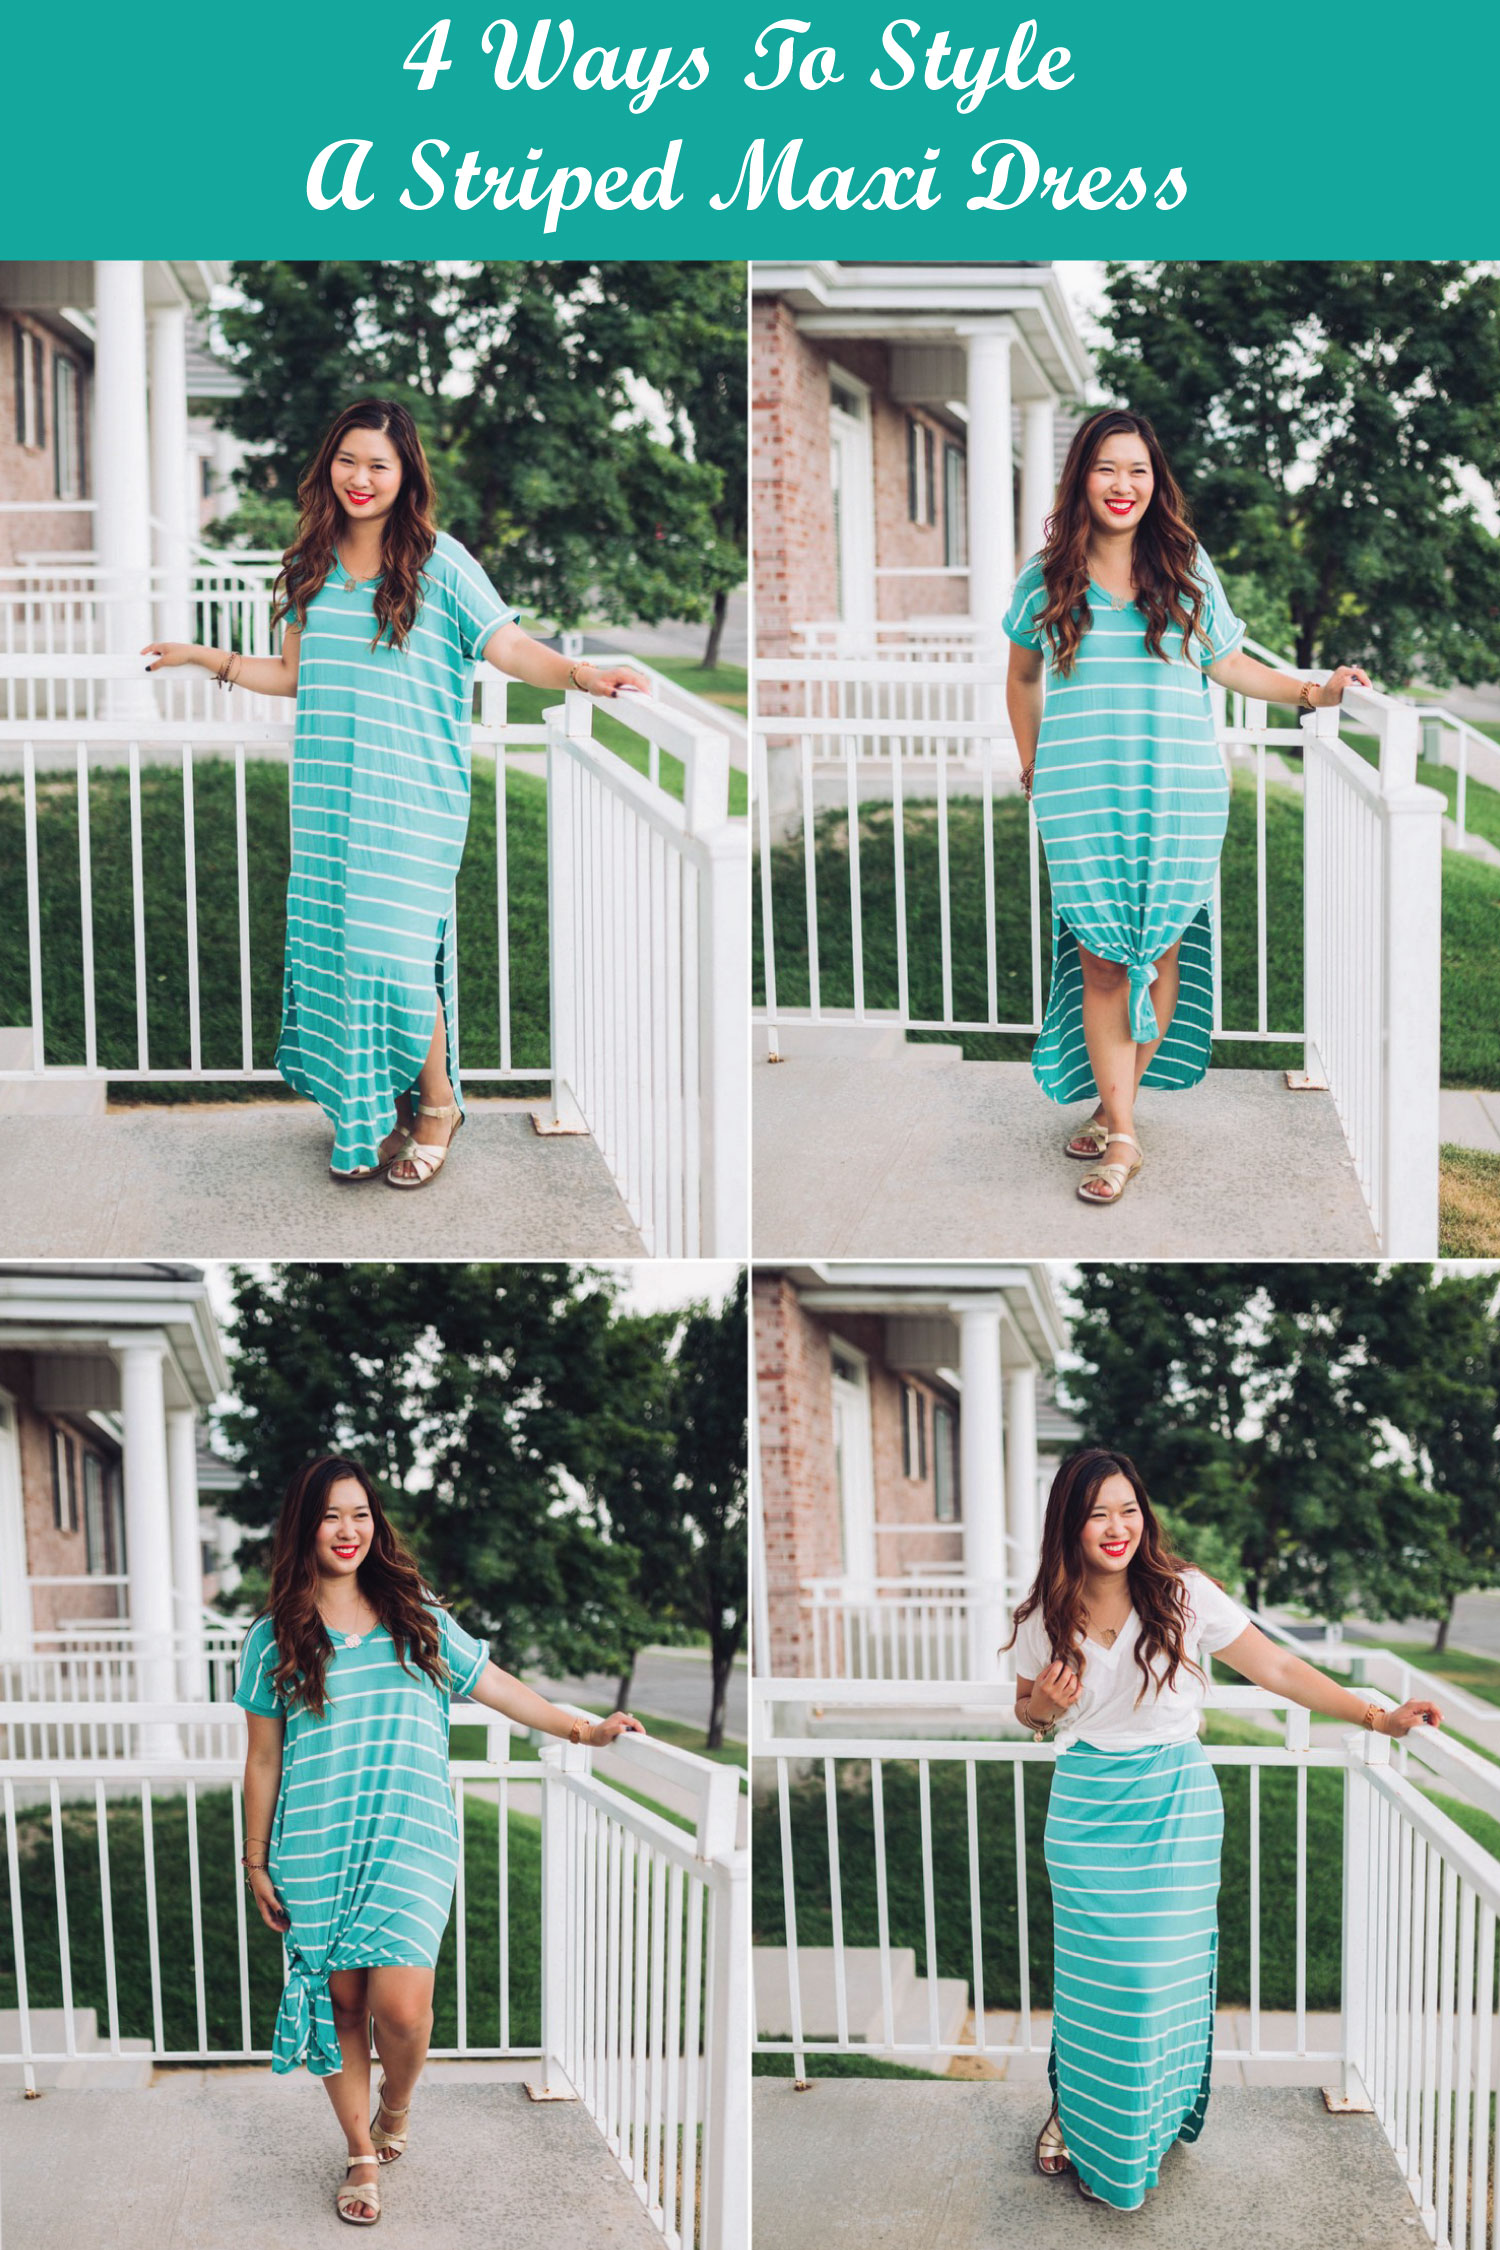 Different ways to style a maxi dress